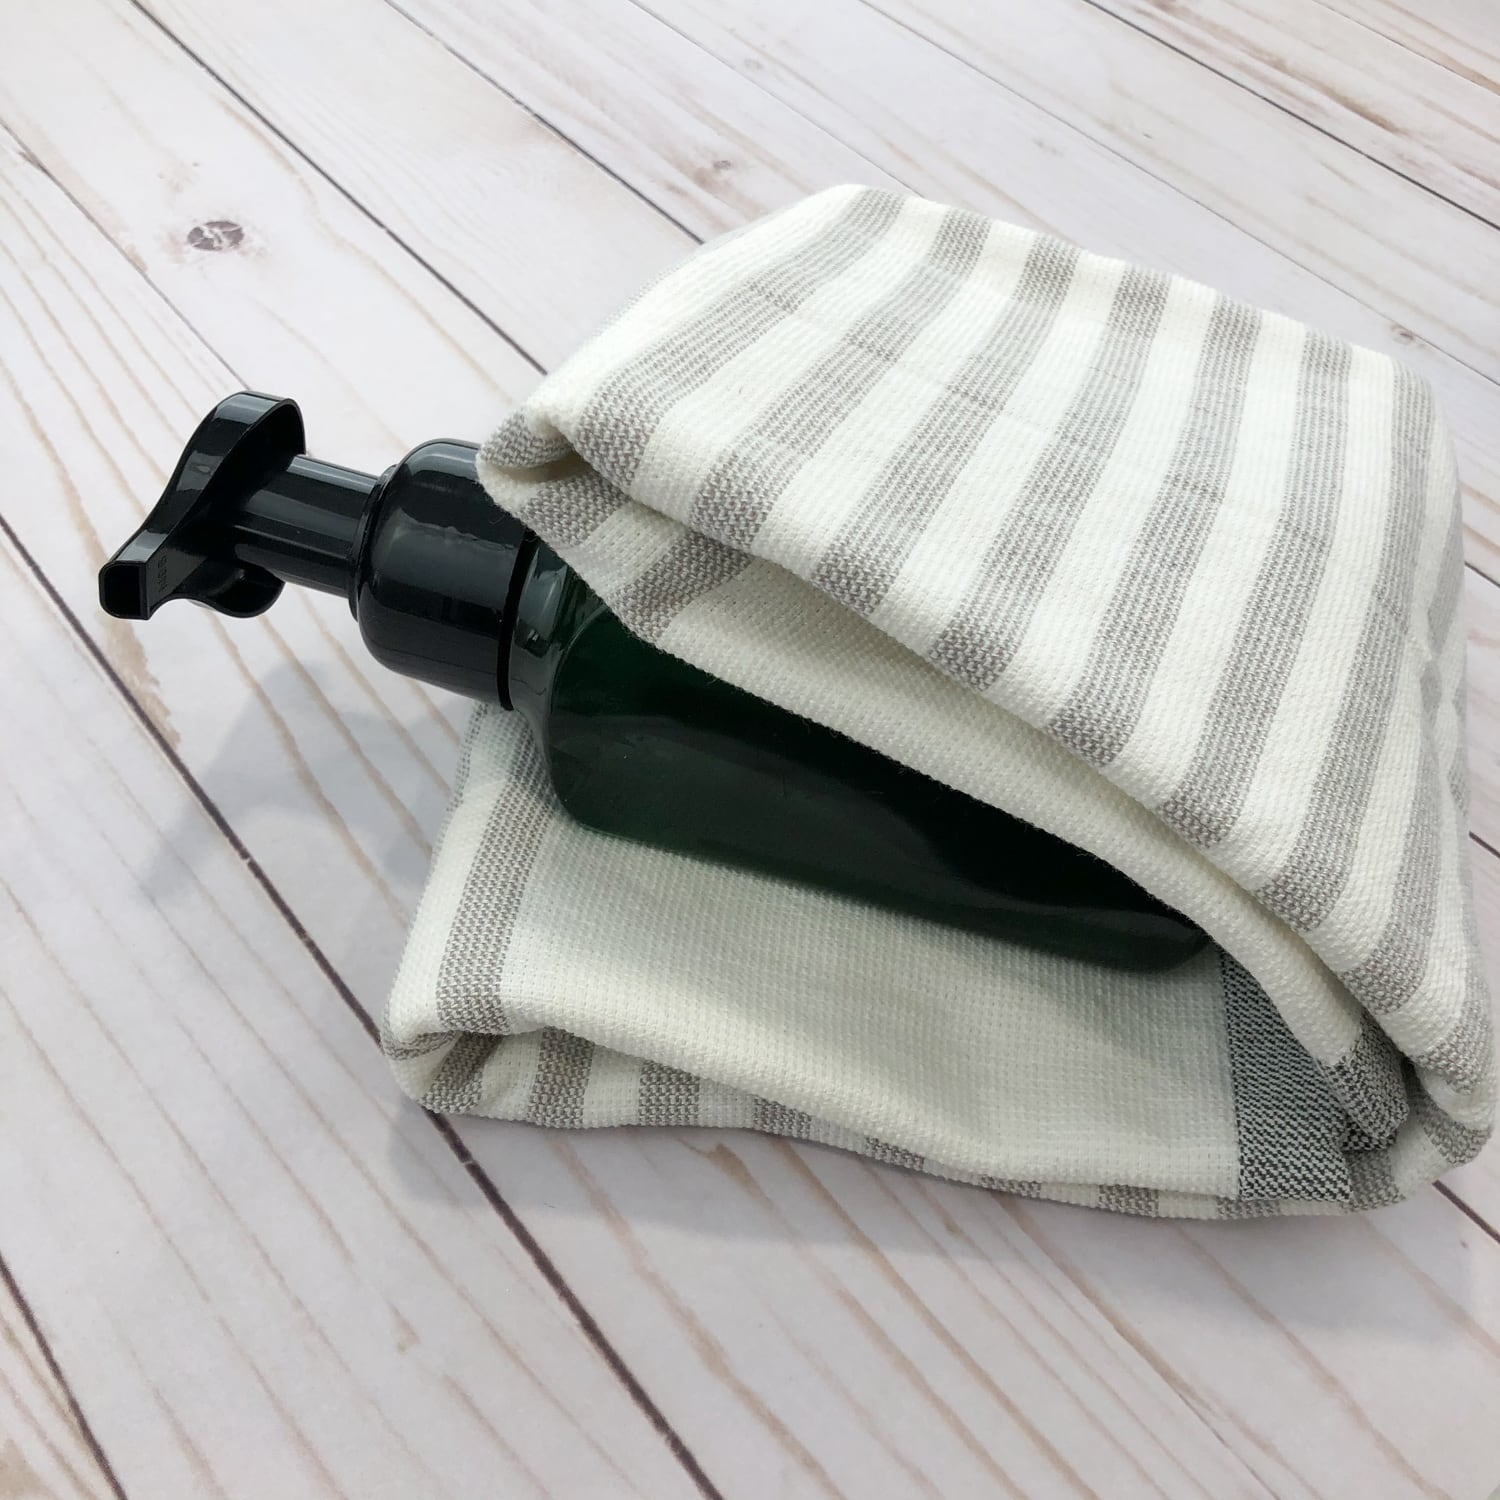 towel folded over soap